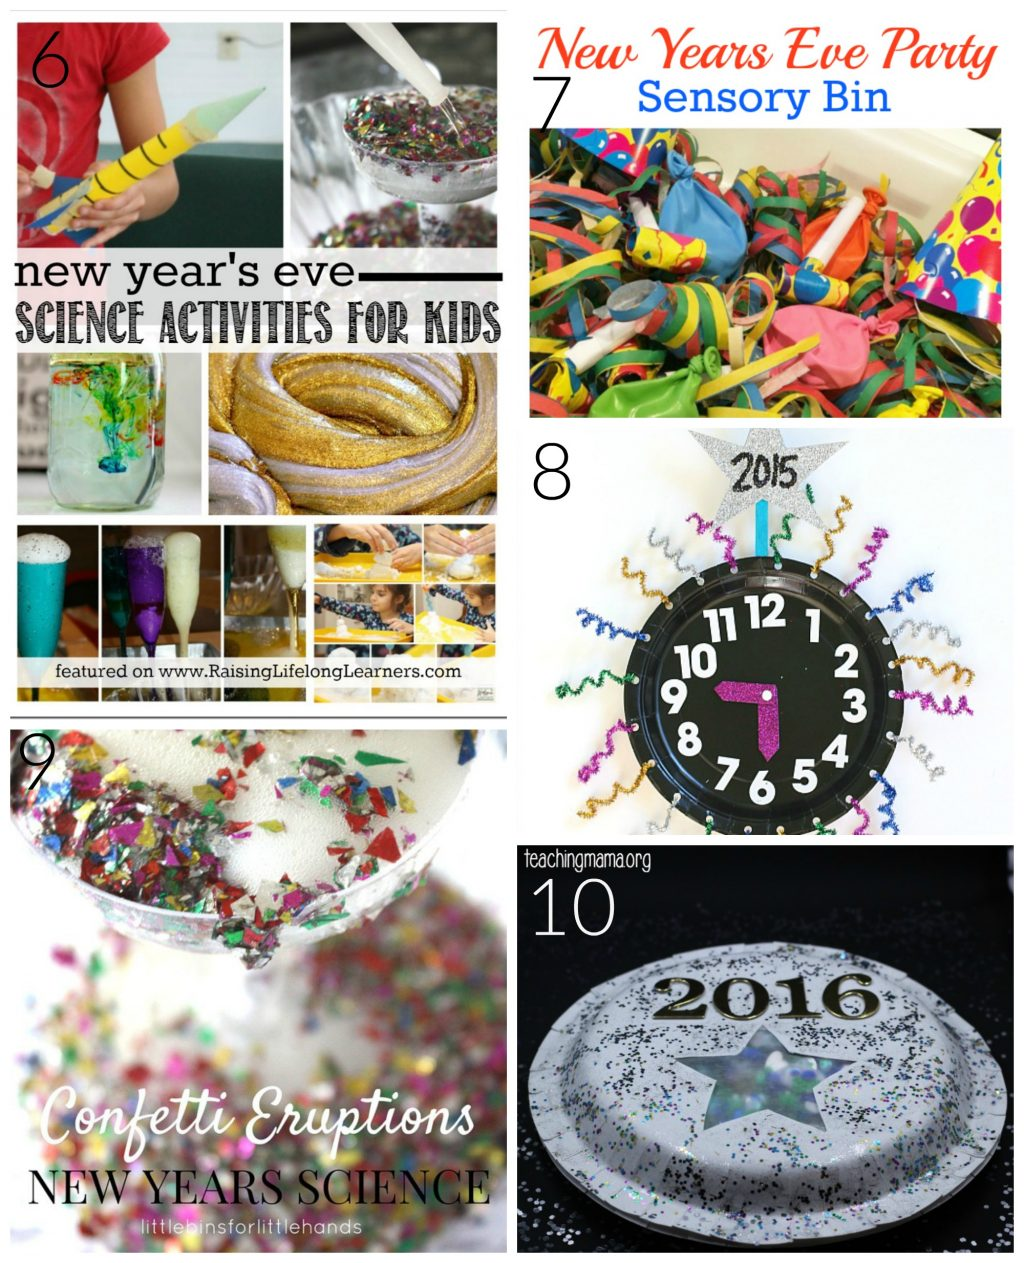 Fun Ideas to Ring in the New Year with Kids